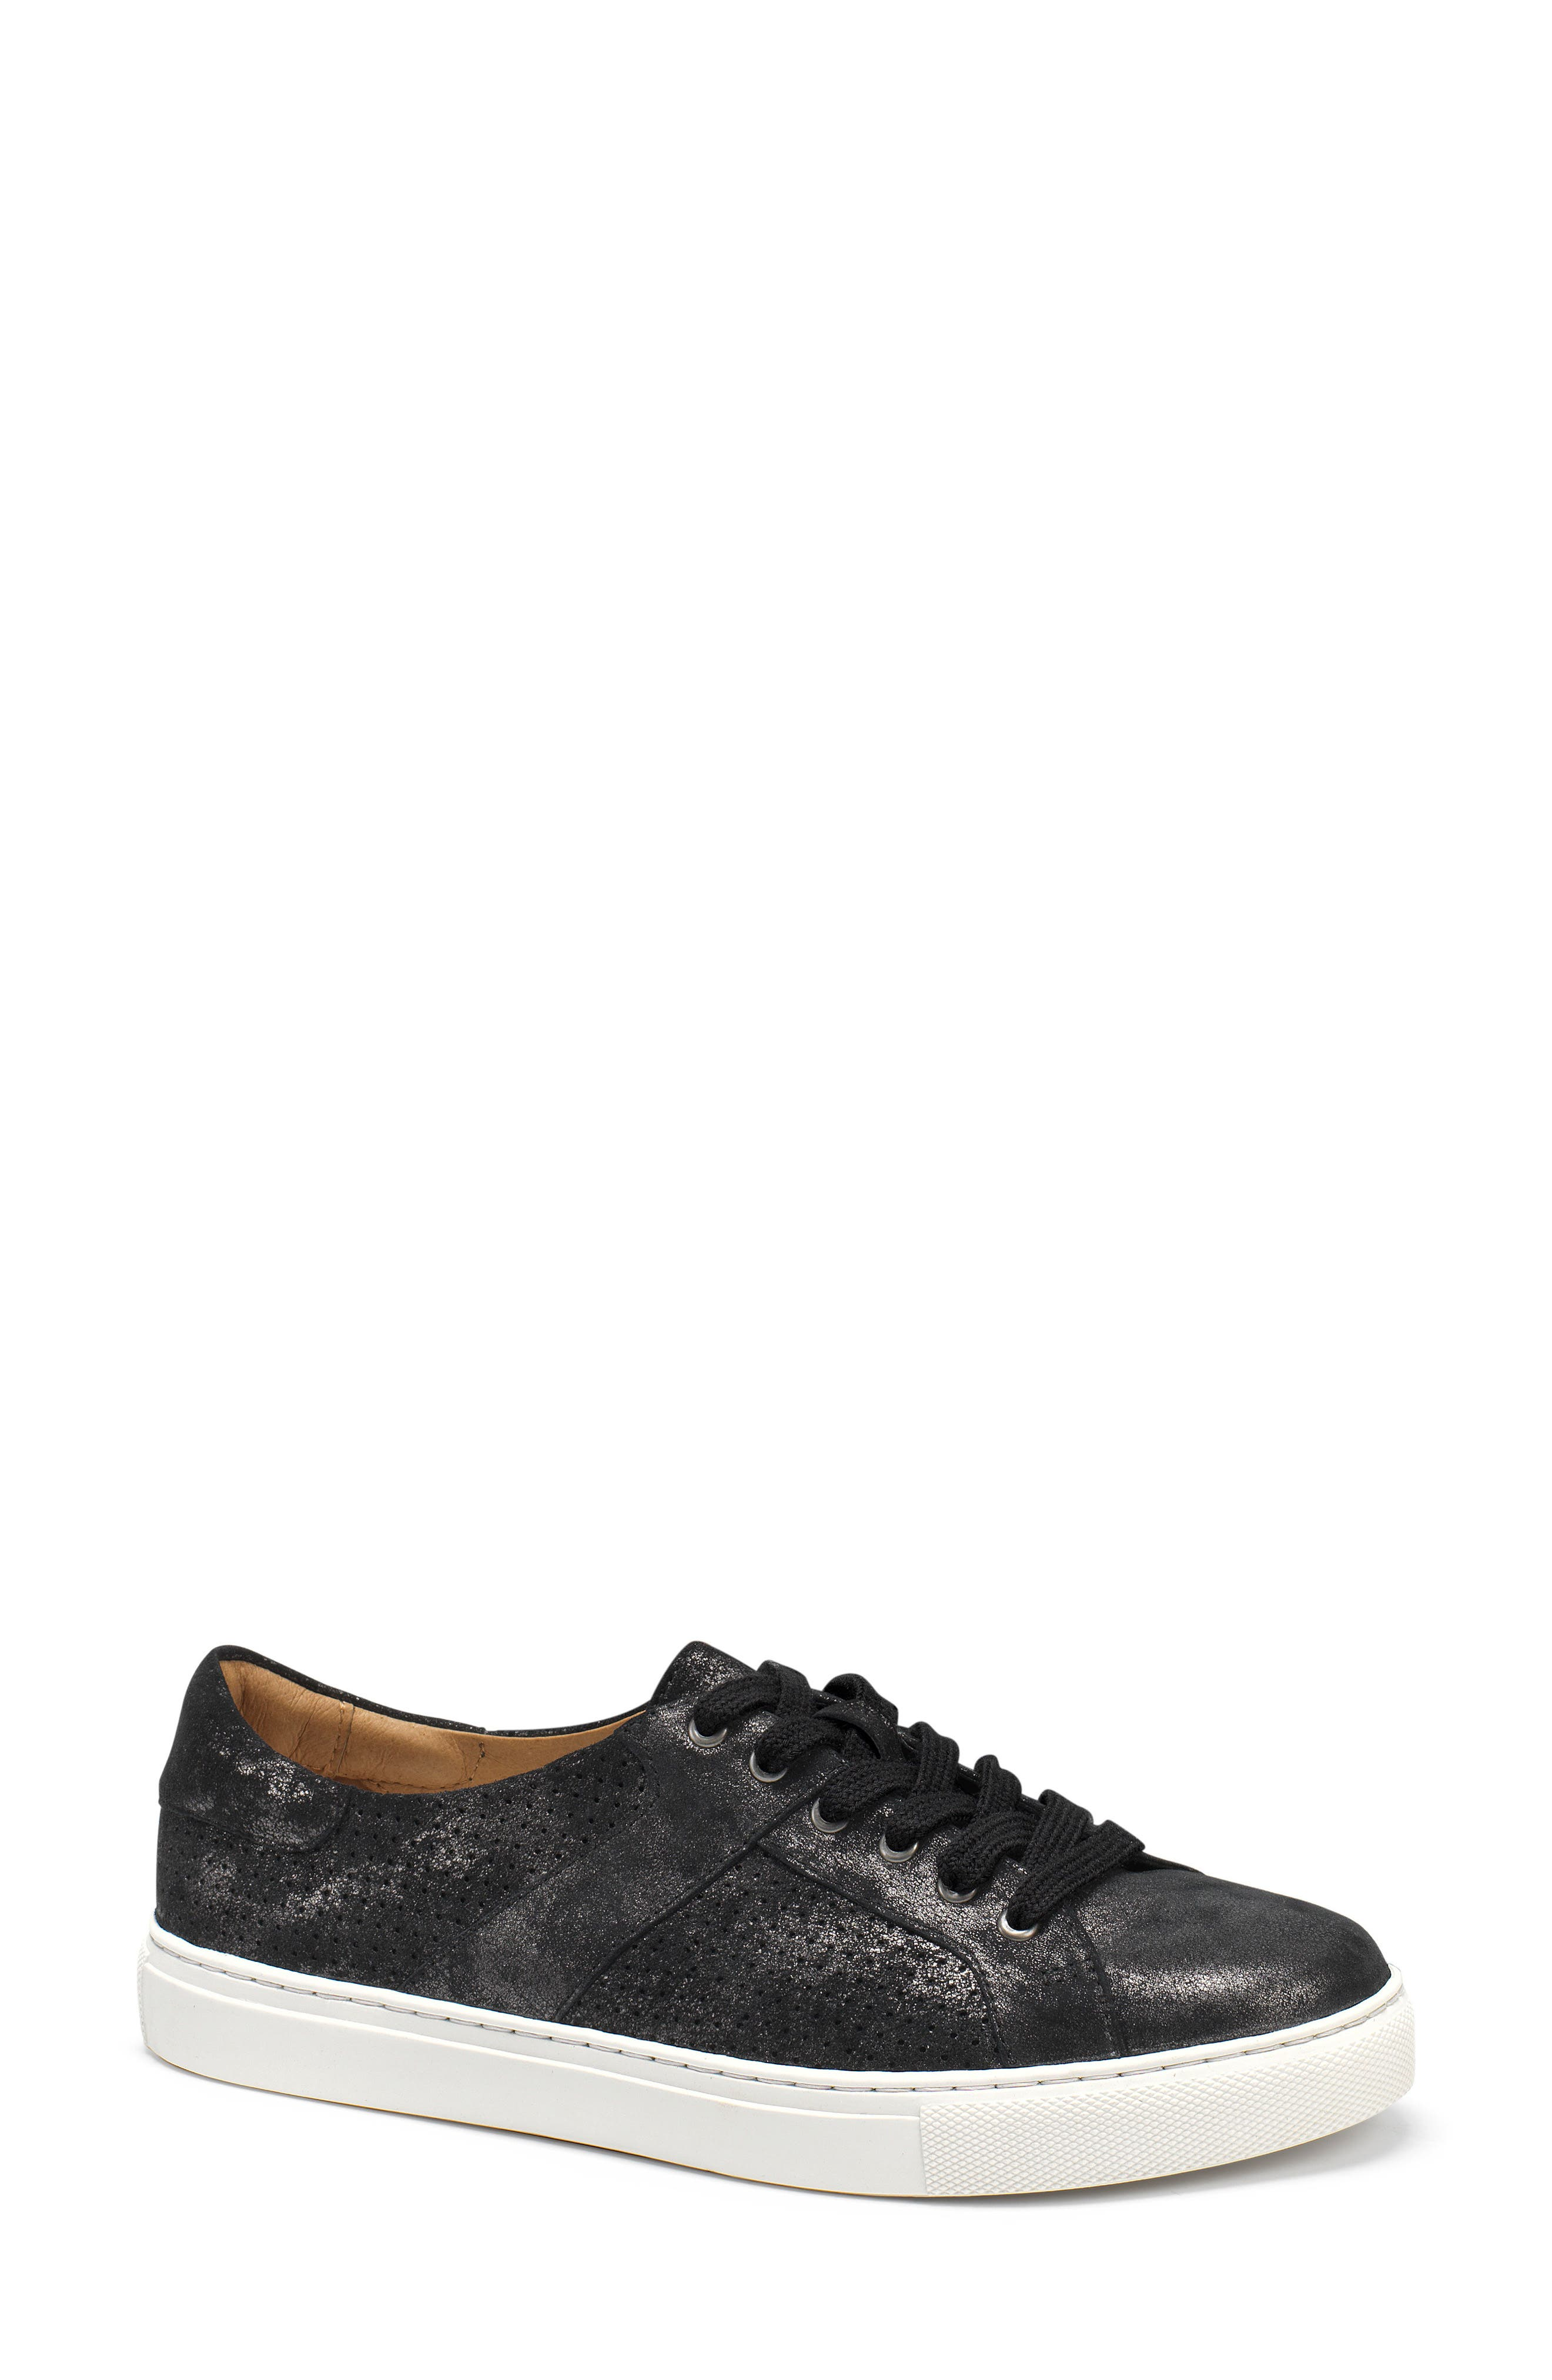 Lindsey Sneaker,                             Main thumbnail 1, color,                             BLACK METALLIC LEATHER